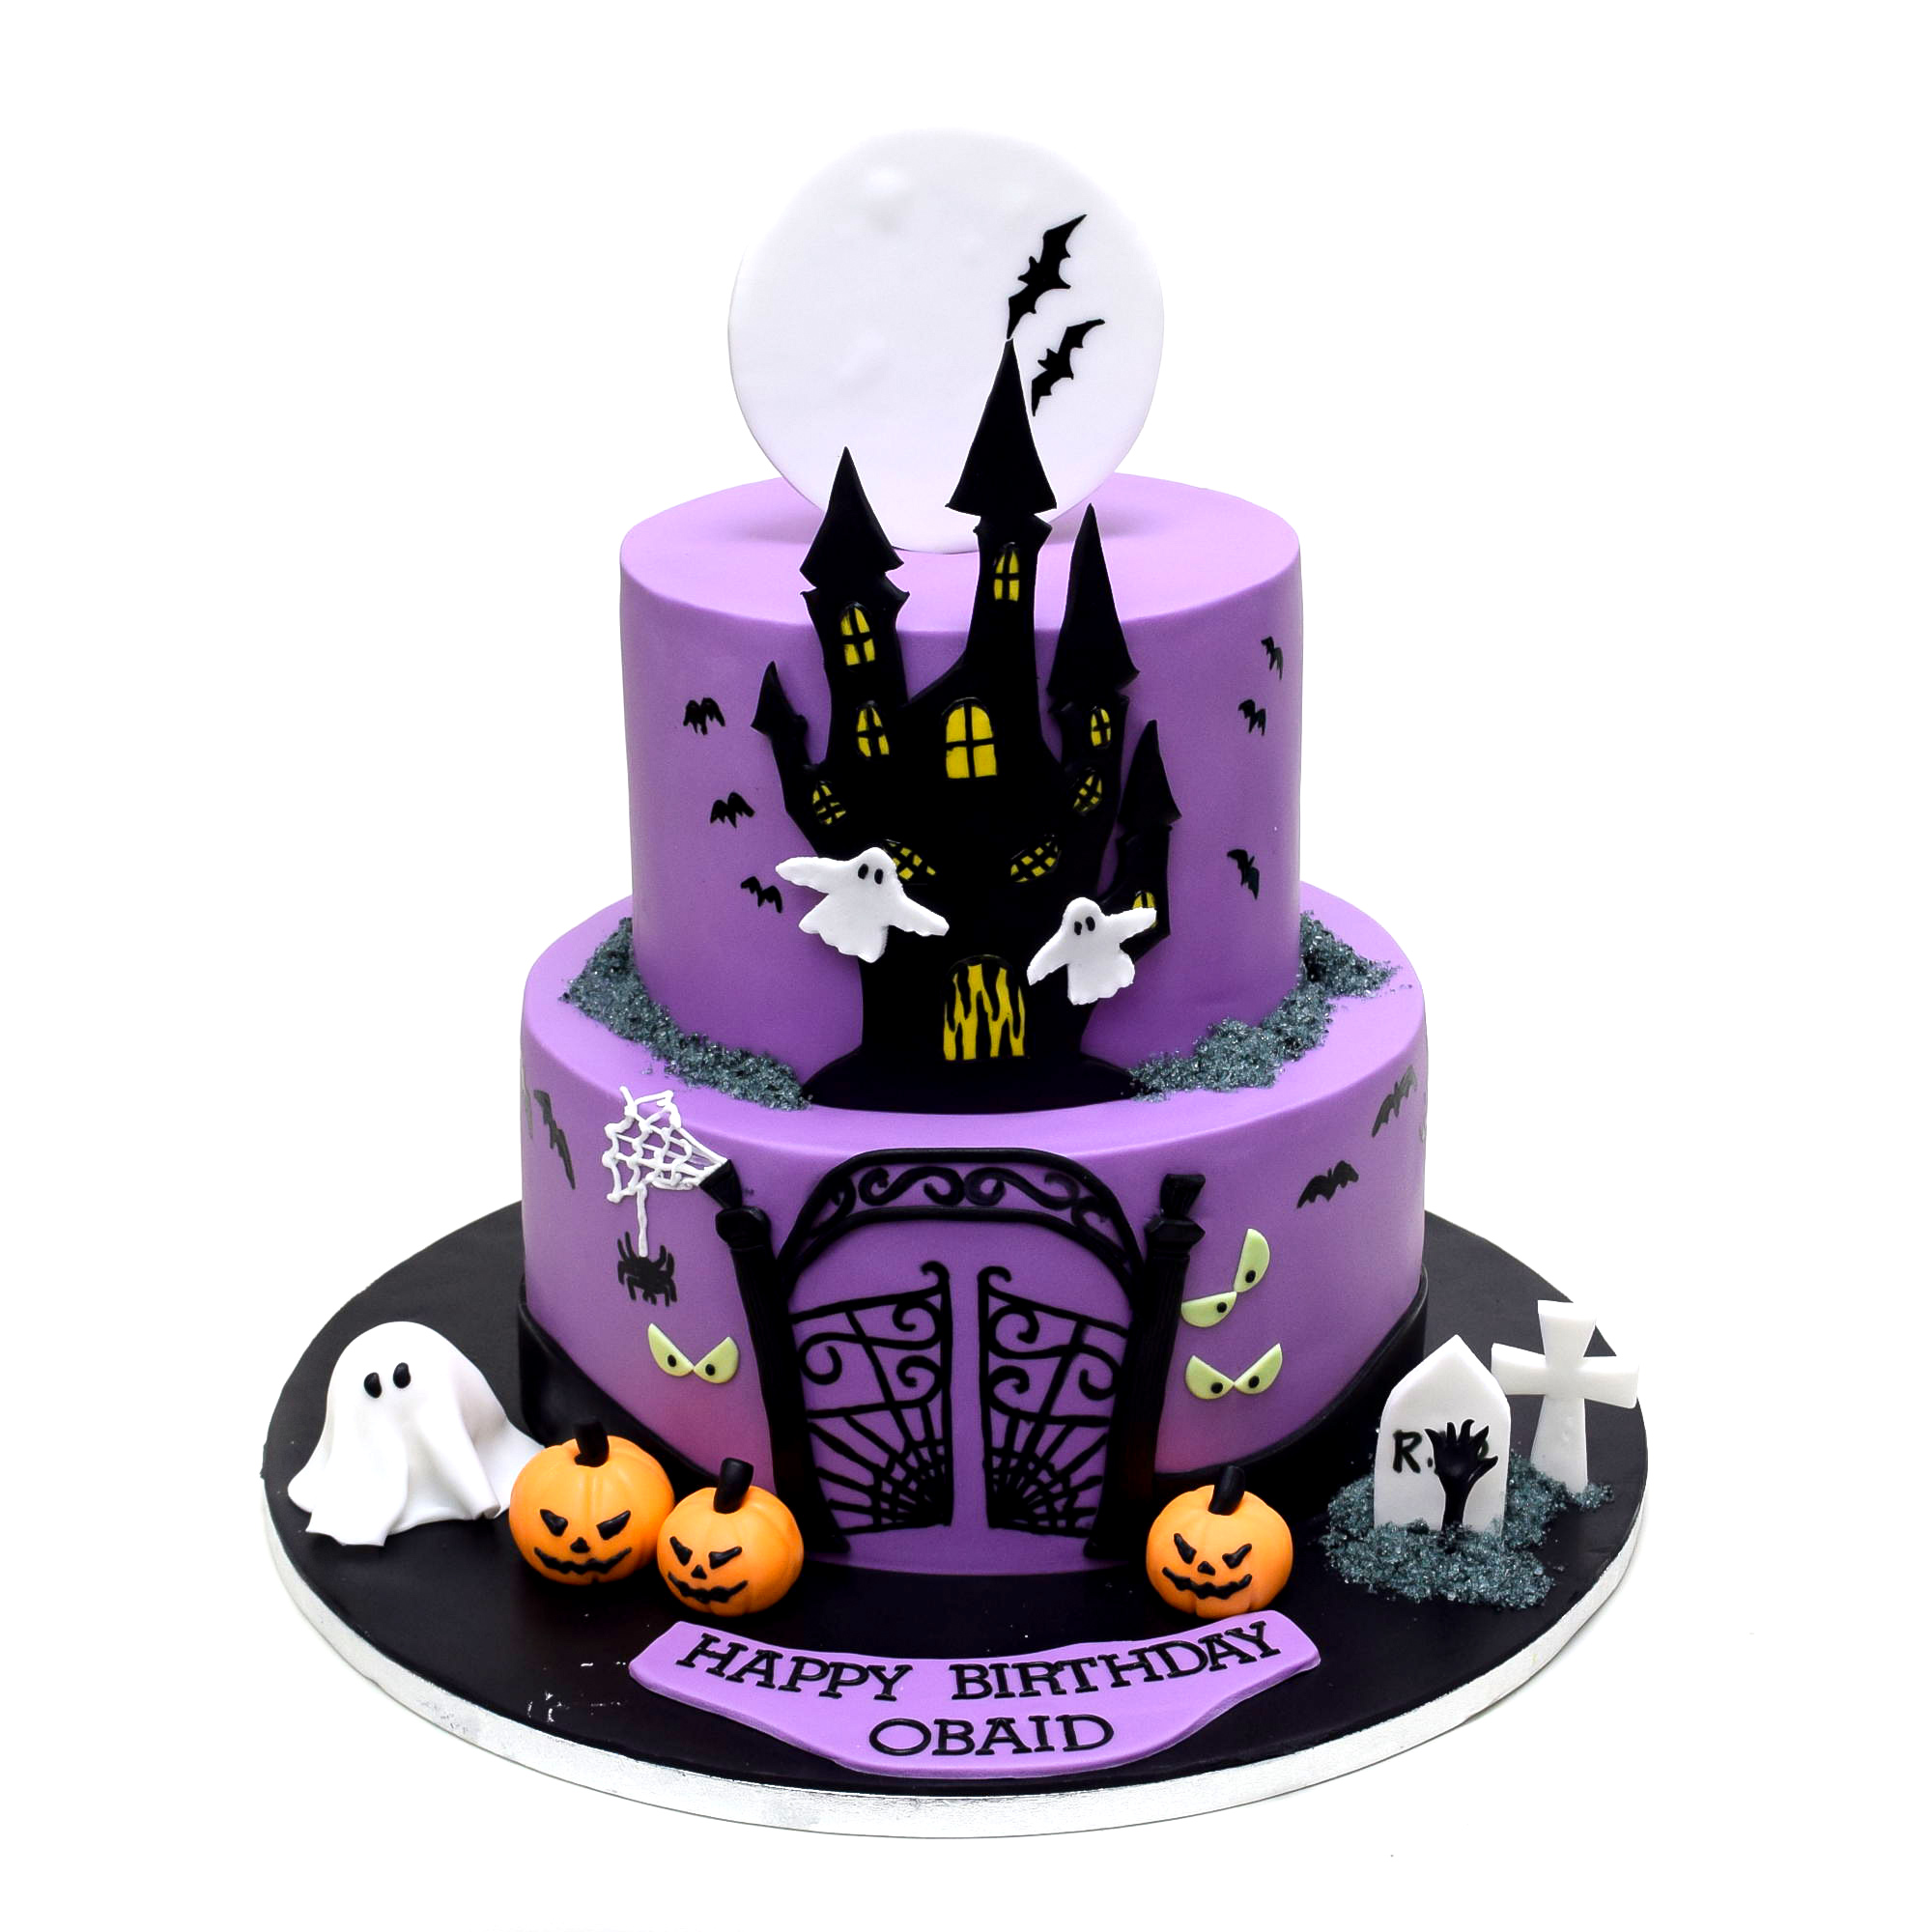 THE SPOOKIEST CAKE DESIGNS FOR HALLOWEEN